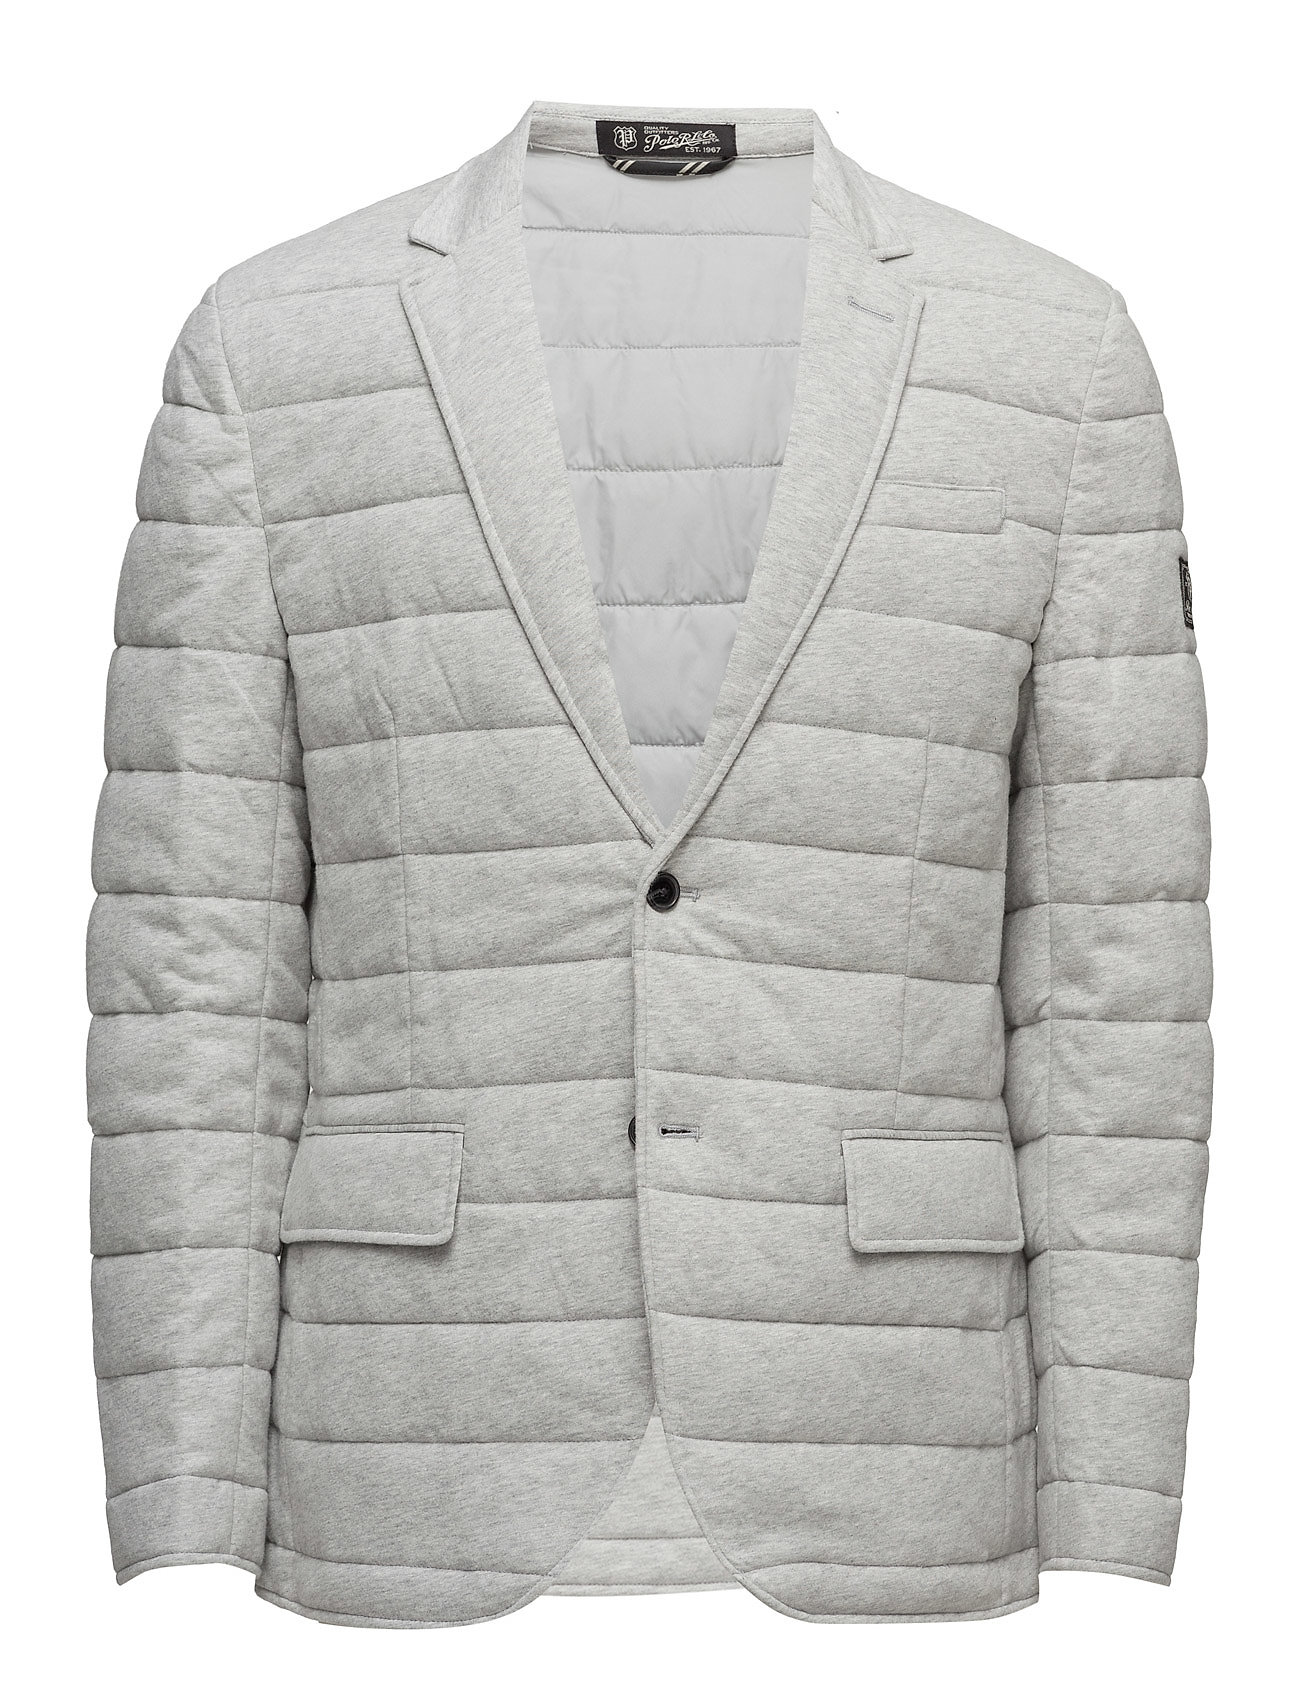 Quilted Cotton Jersey Jacket (Spring Heather) (£164.45) - Polo ... : polo ralph lauren quilted - Adamdwight.com